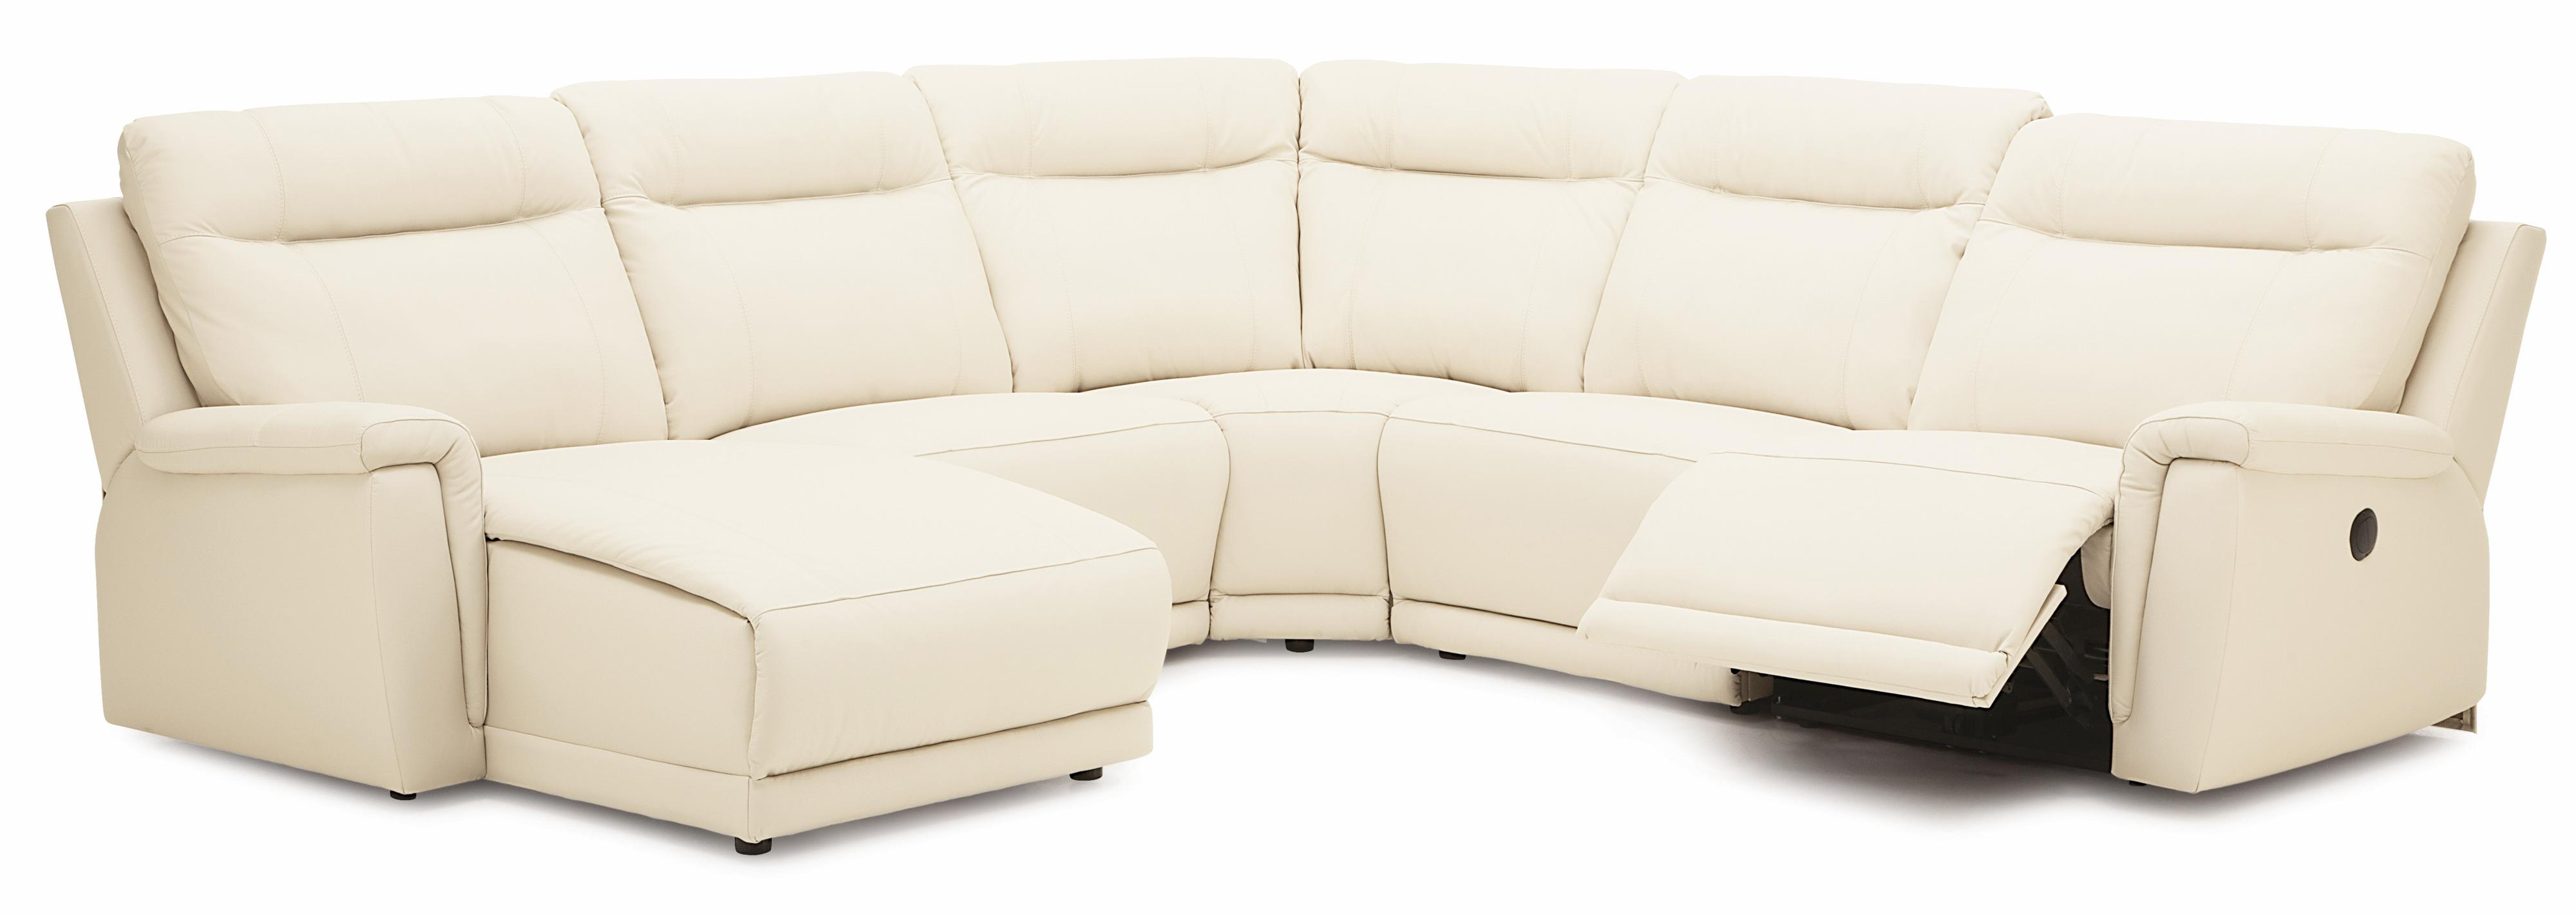 pause modern reclining sectional sofa by palliser dwr sliding sleeper reviews westpoint contemporary left hand facing